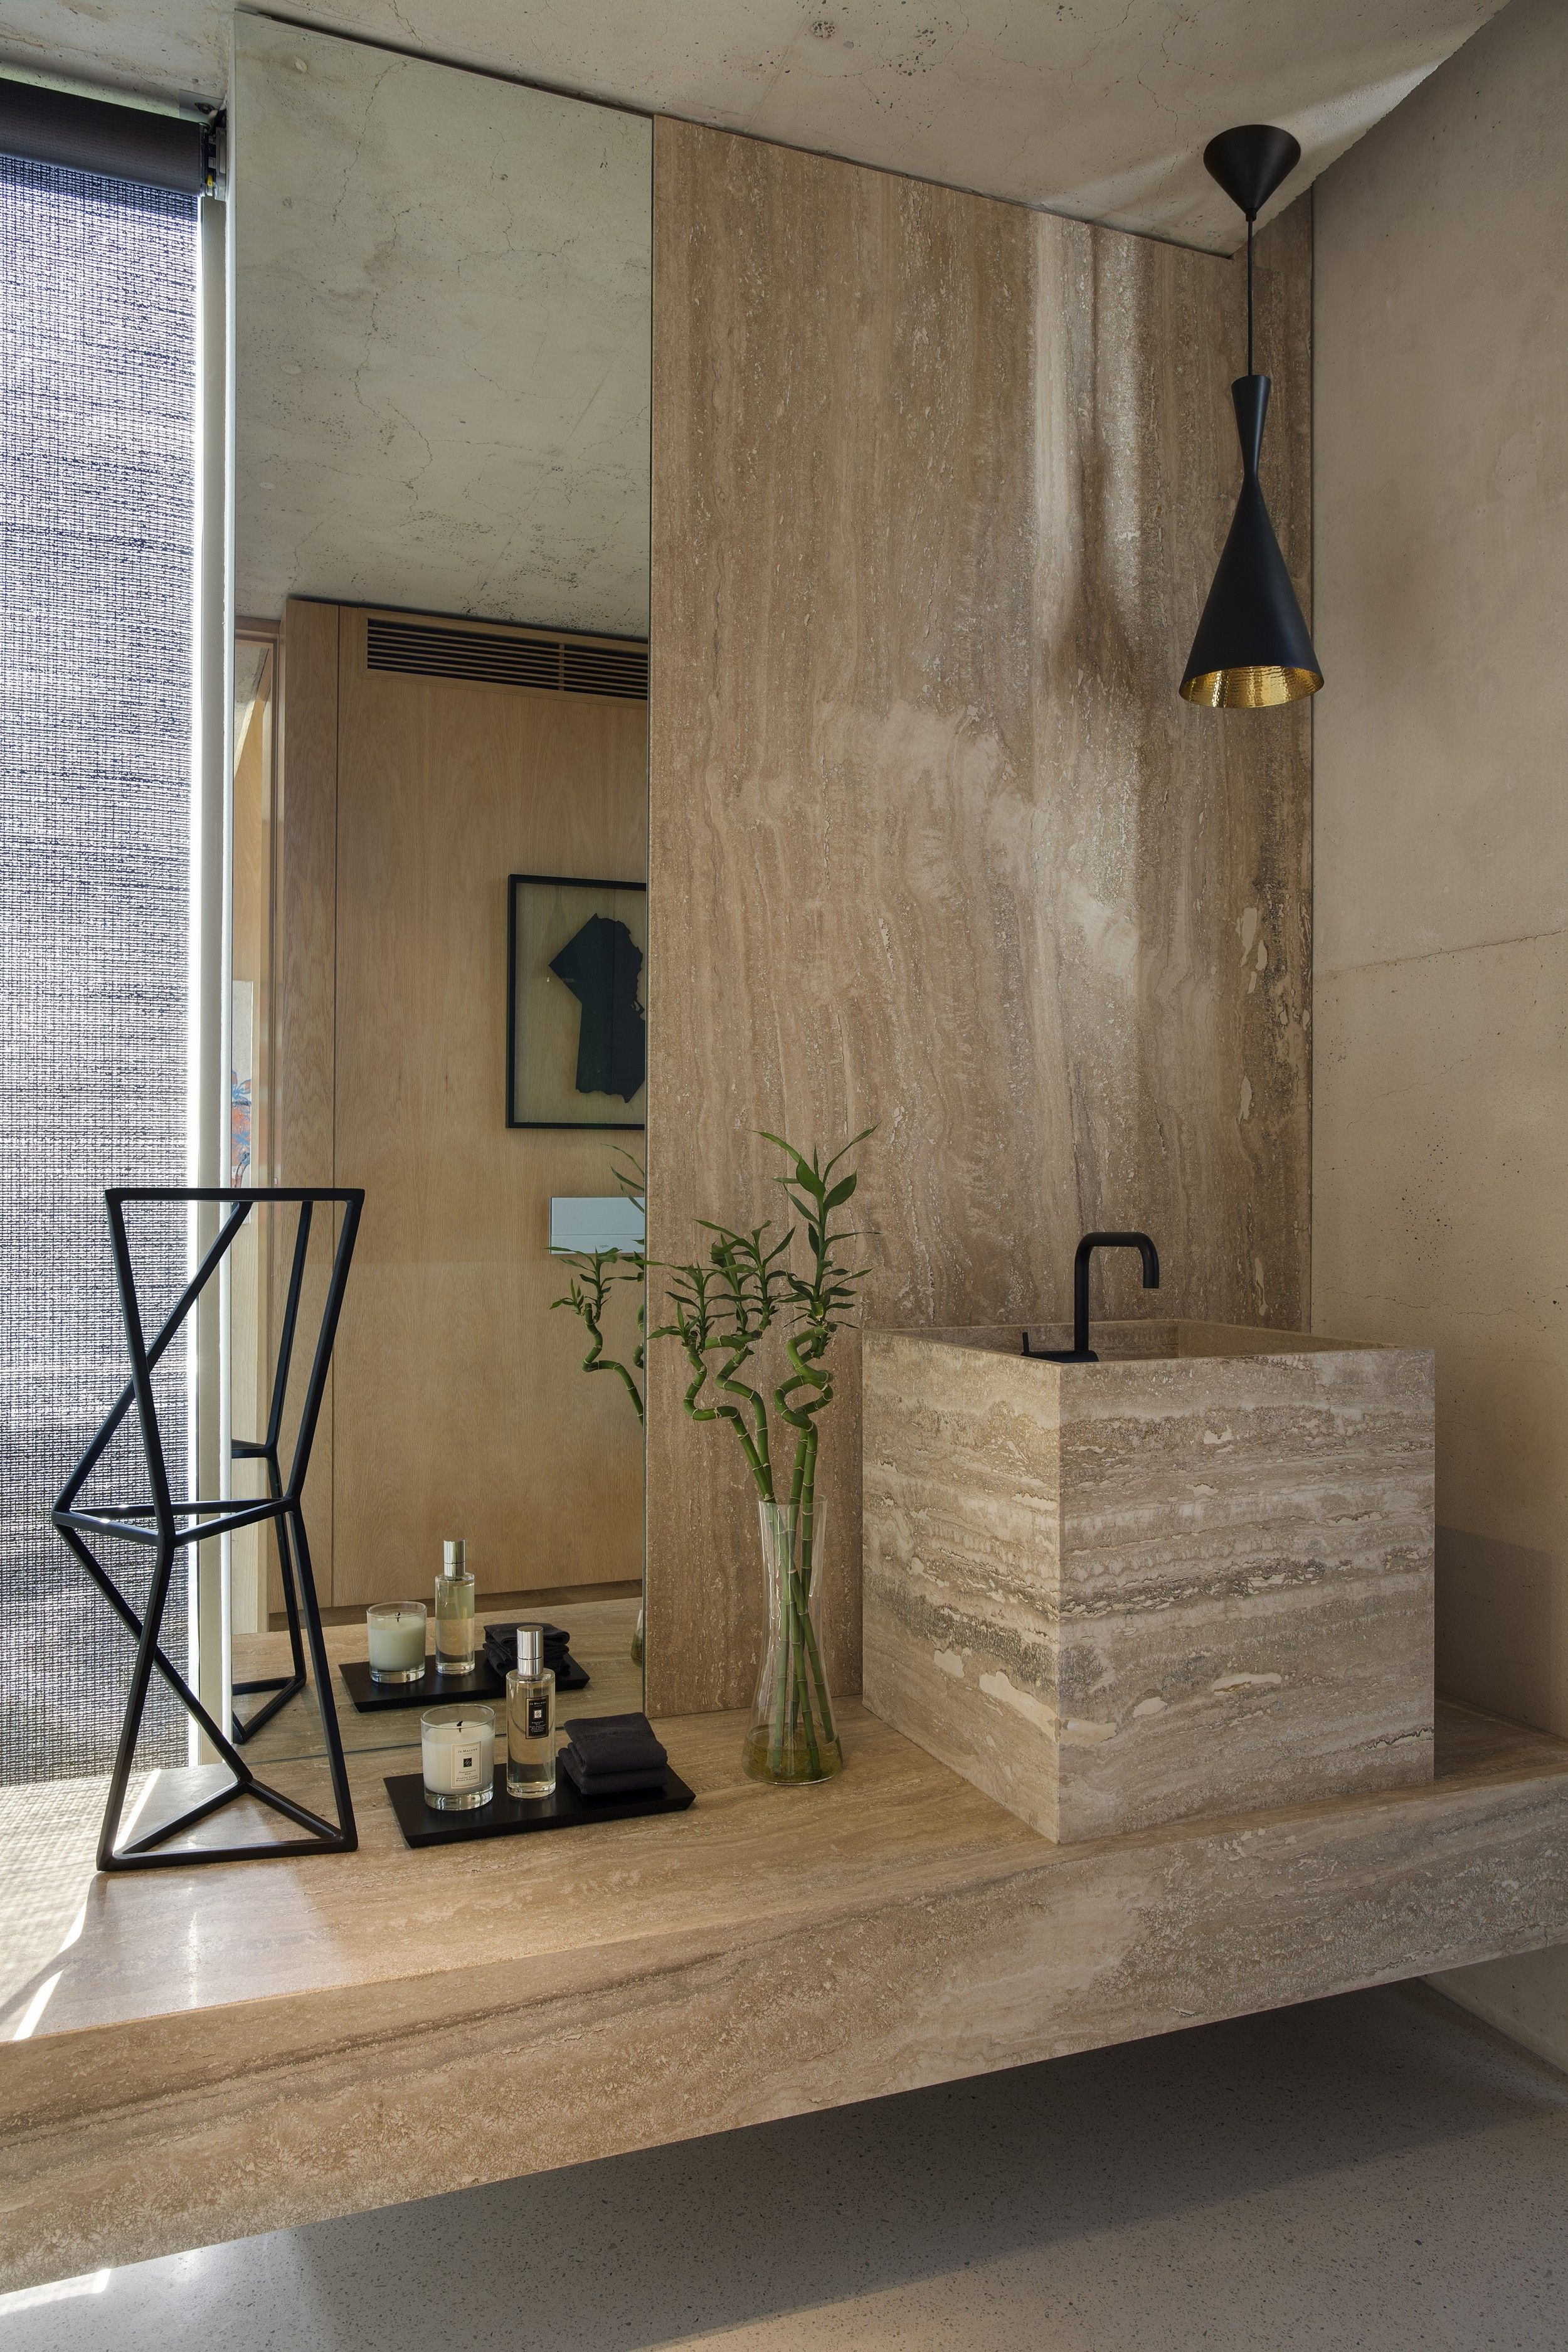 OVD 919 by SAOTA as Architects (With images) Bathroom